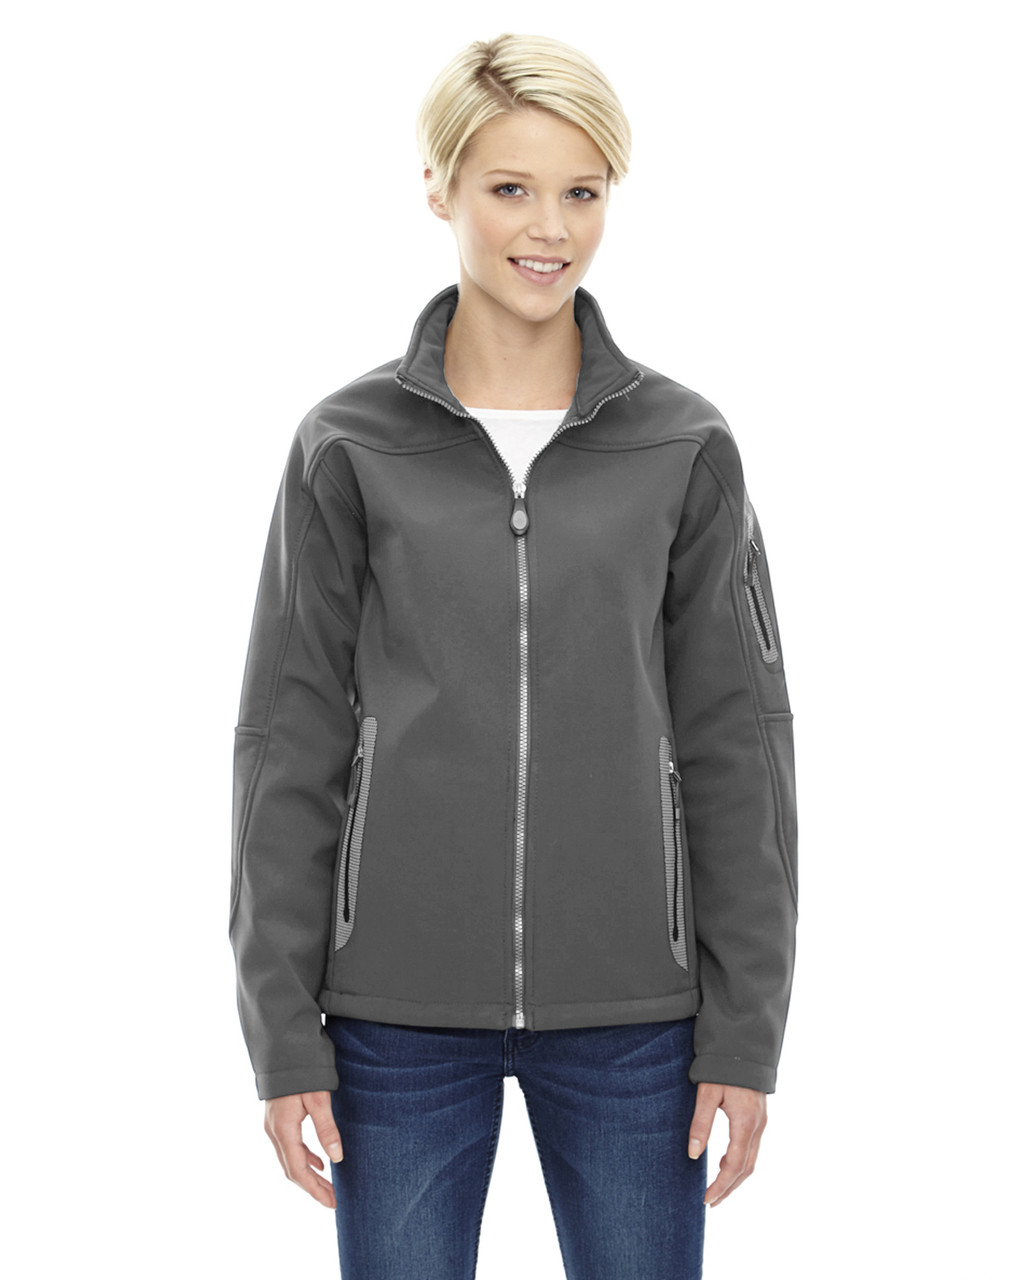 Graphite - 78060 North End Ladies' Soft Shell Technical Jacket | Blankclothing.ca